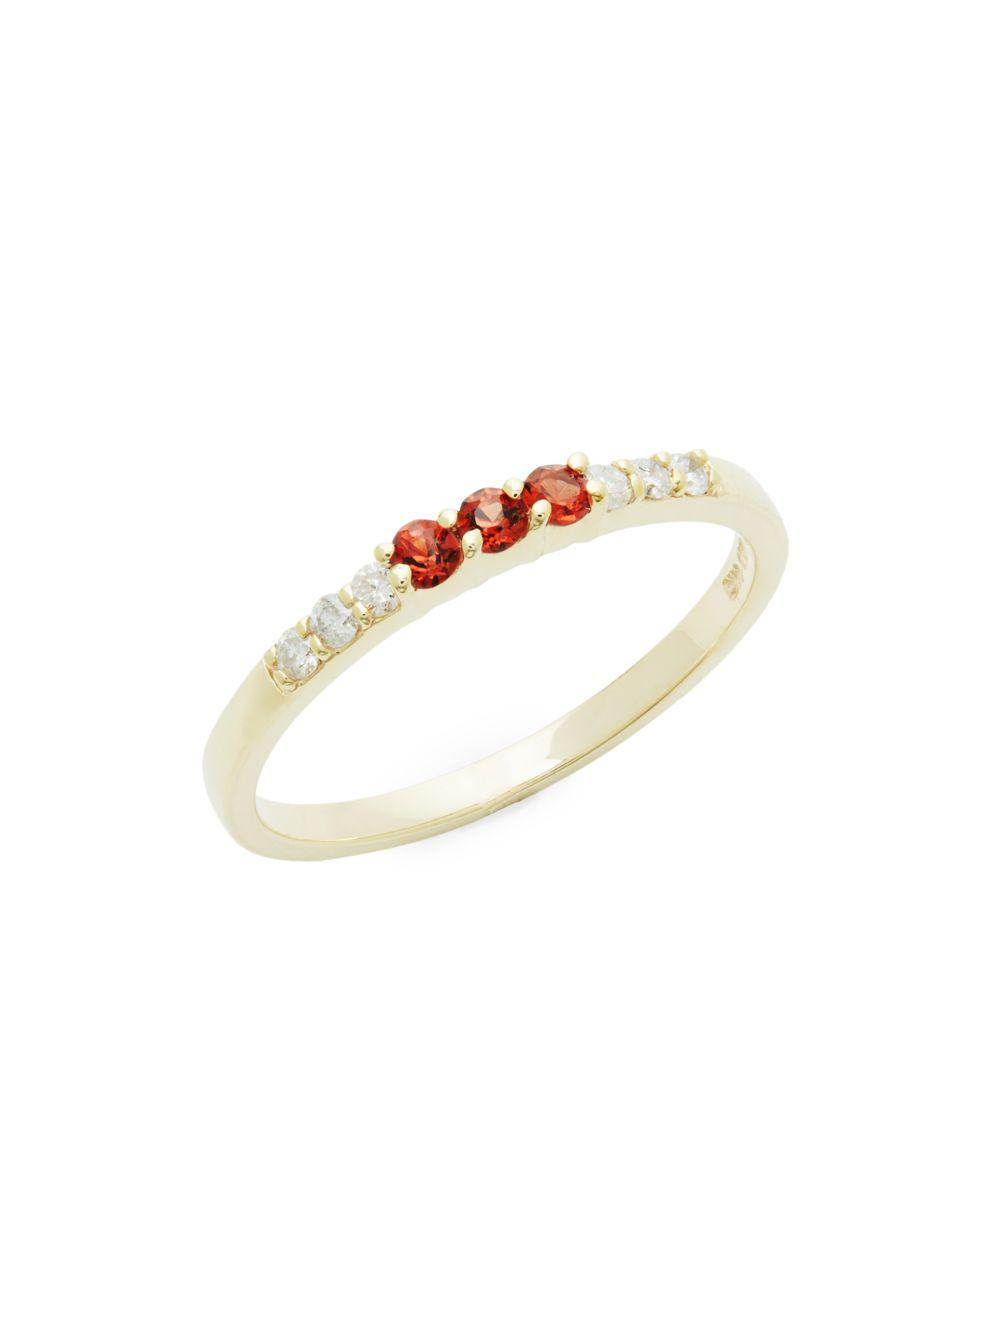 ad9f30777765a Lyst - Danni Diamond, Garnet And 14k Yellow Gold Ring, 0.15 Tcw in ...